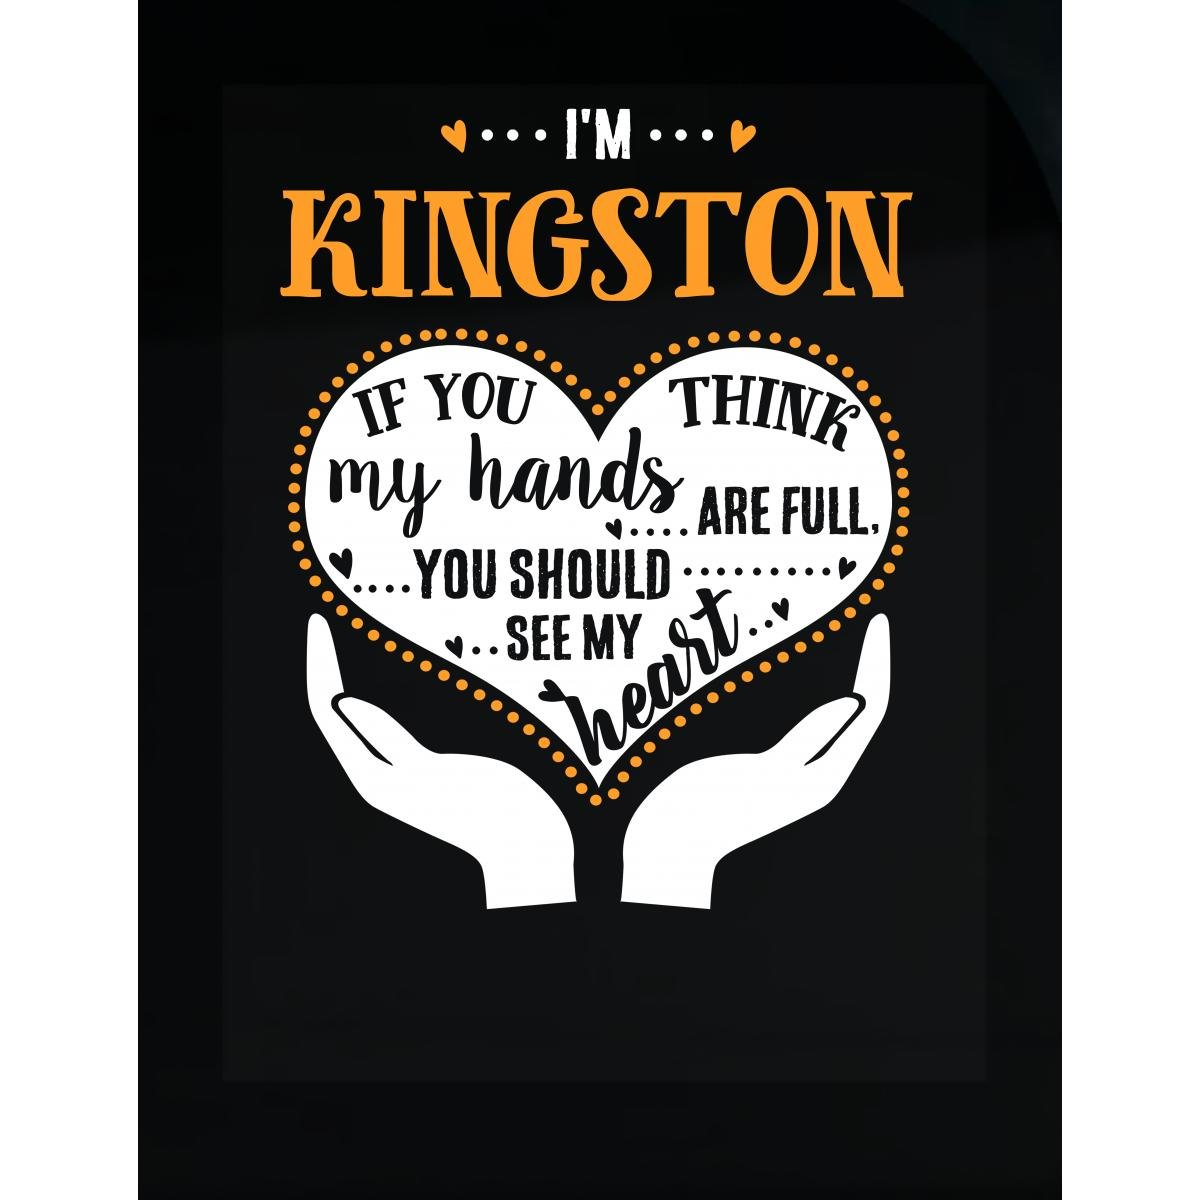 Amazon com kingston should see my heart cool gift sticker home kitchen